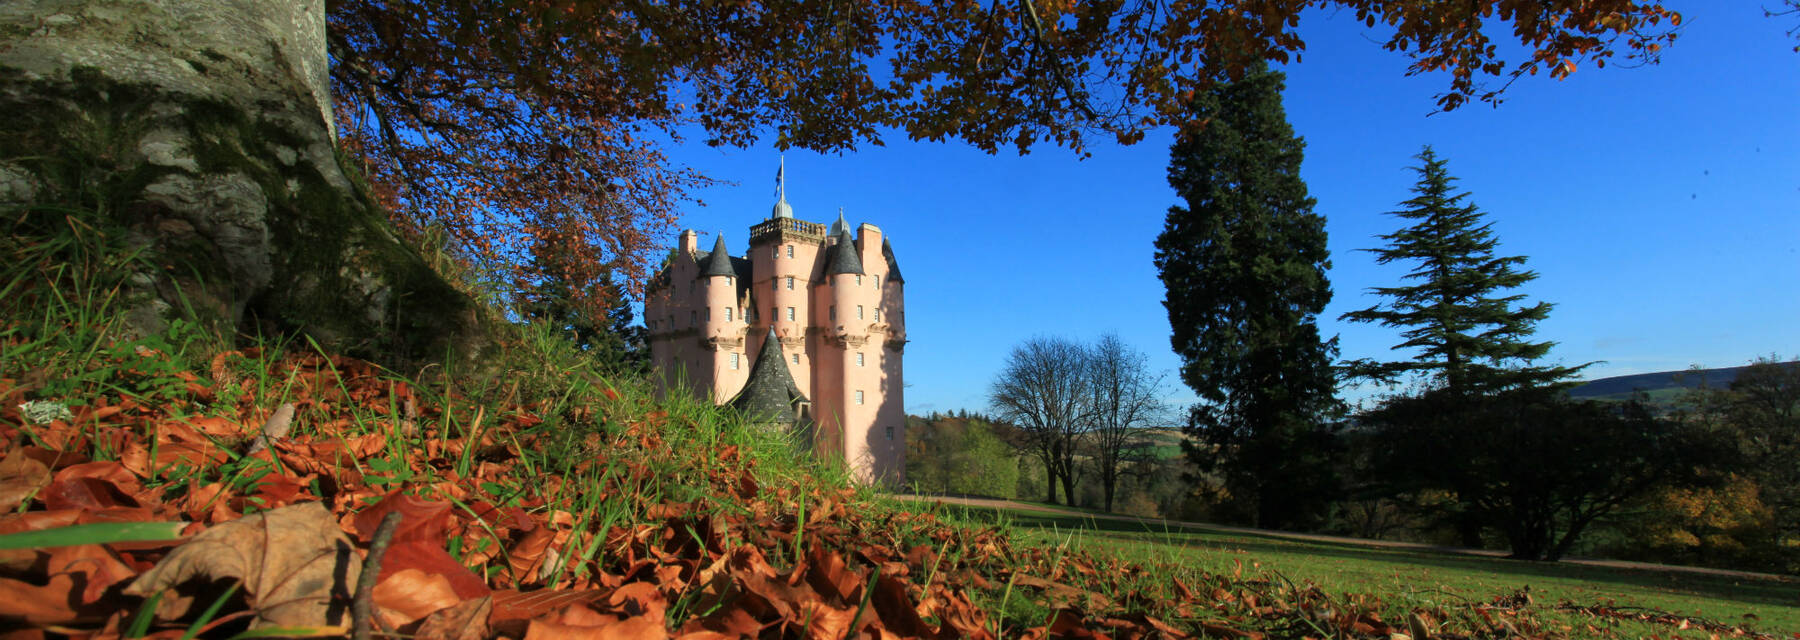 A view of Craigievar Castle in autumn on a sunny day. The image is taken from ground level at the foot of a large tree, with orange fallen leaves in the foreground. The pink tall storeys of the castle can be seen in the background, against a bright blue sky.